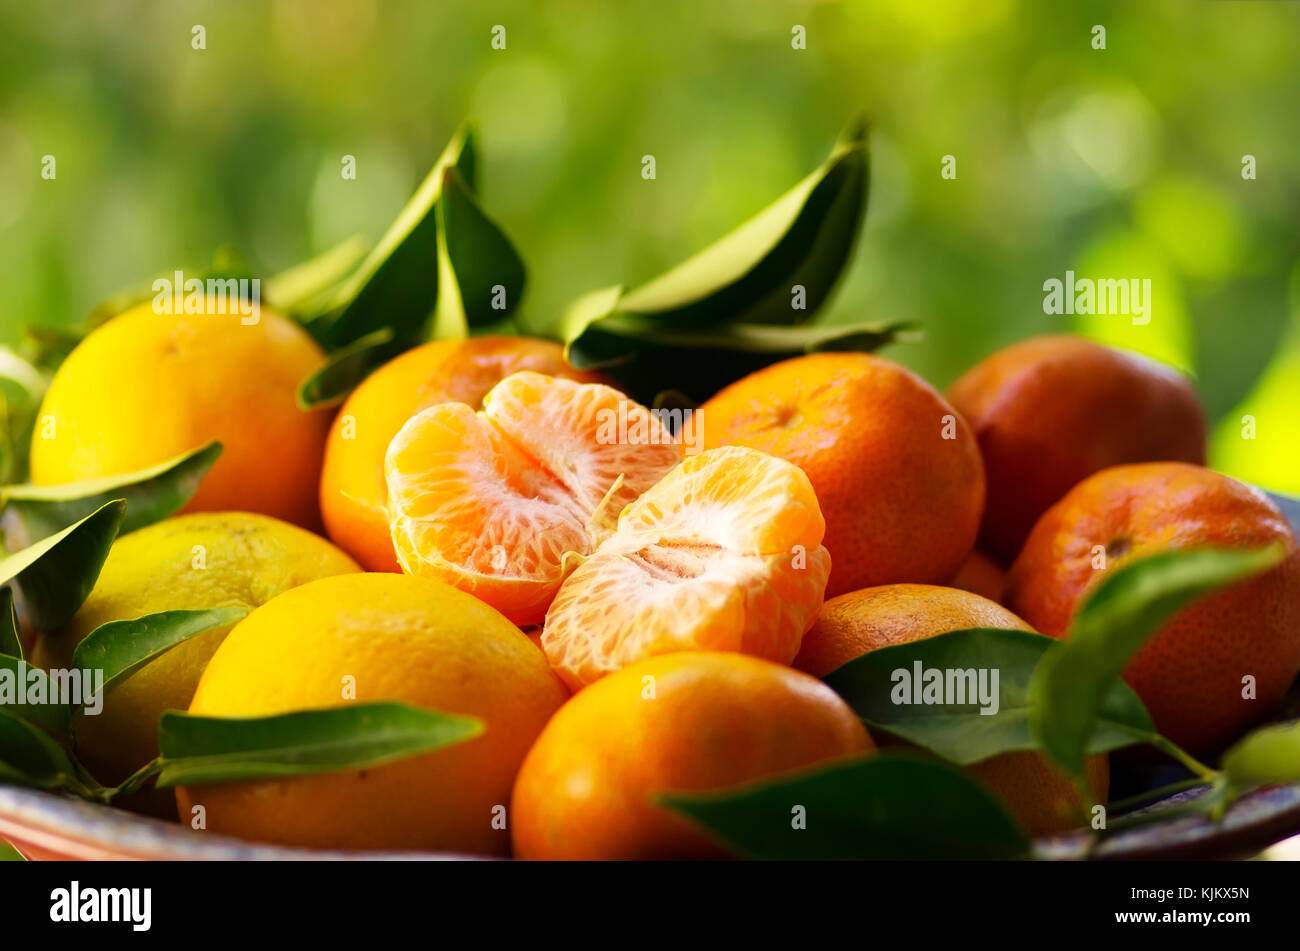 fresh tangerines on a green background Stock Photo